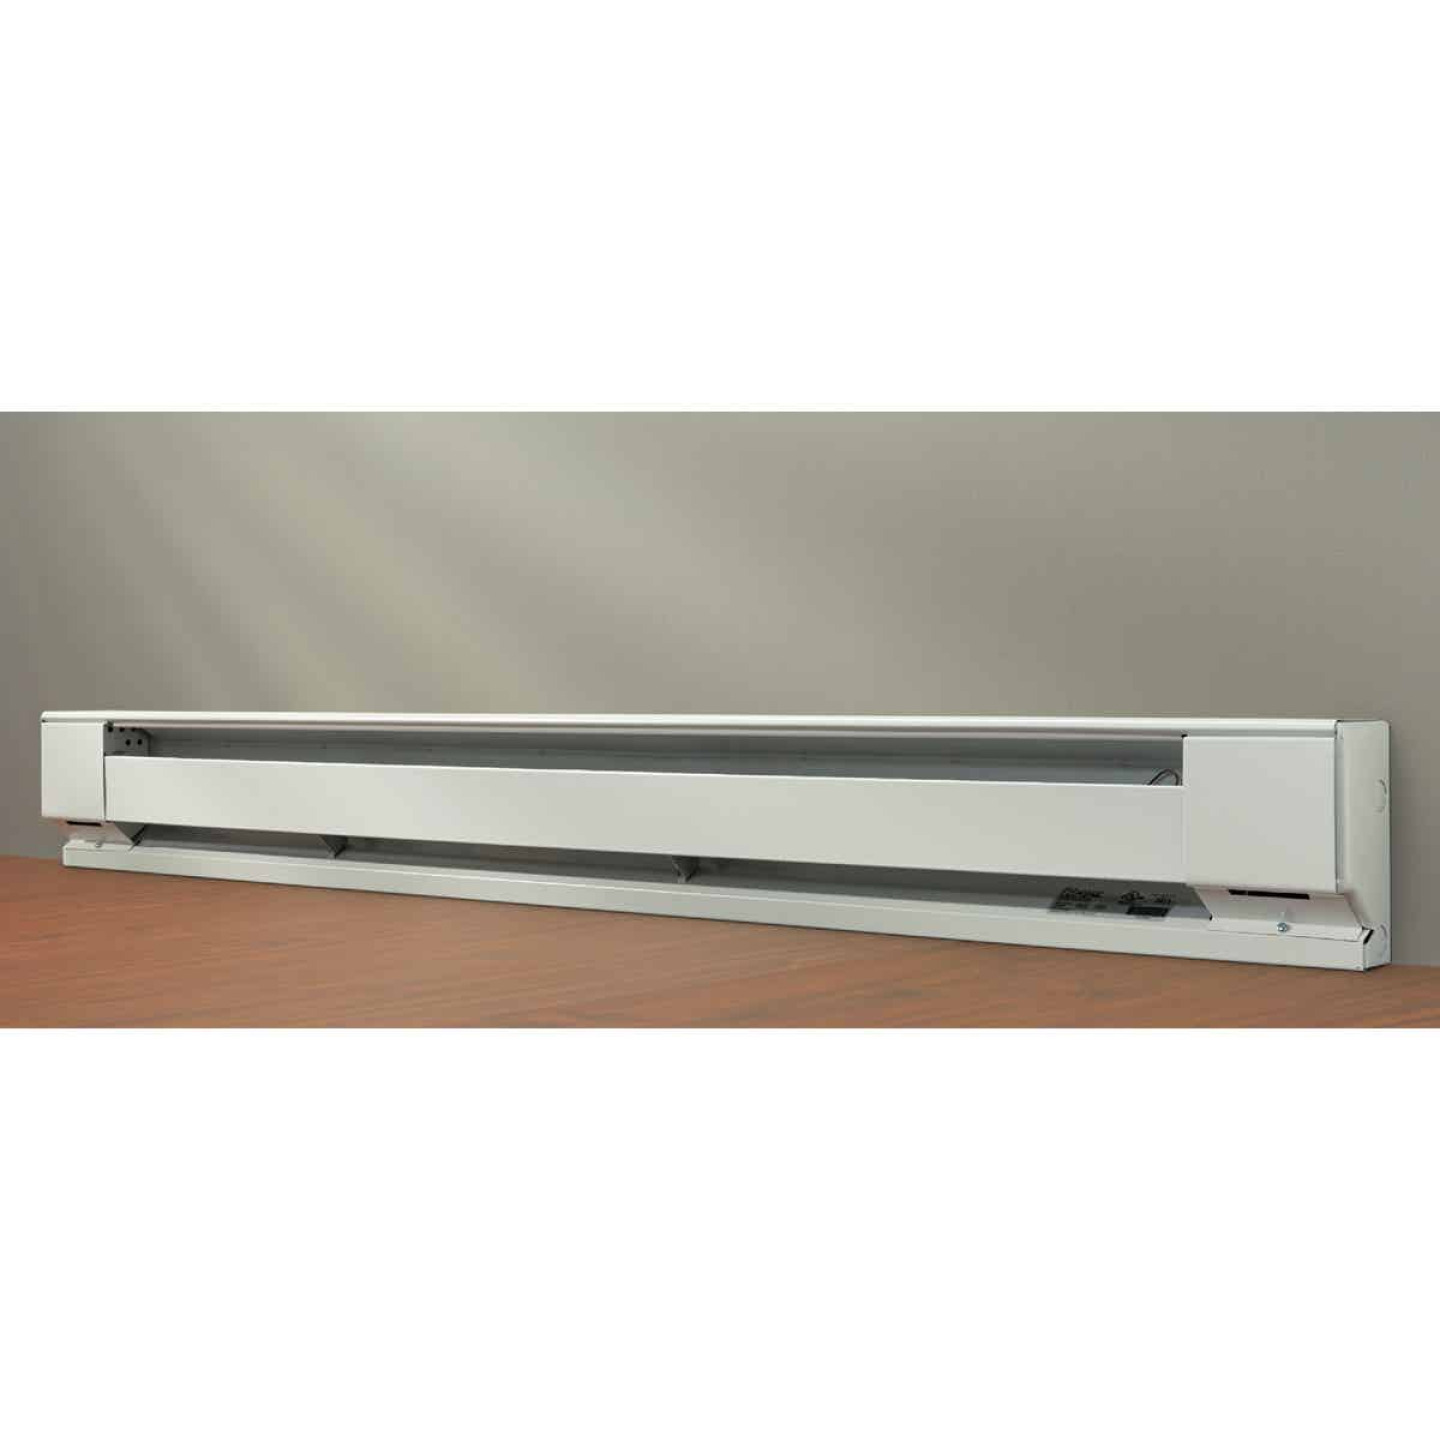 Fahrenheat 72 In. 1500-Watt 240-Volt Electric Baseboard Heater, Northern White Image 2